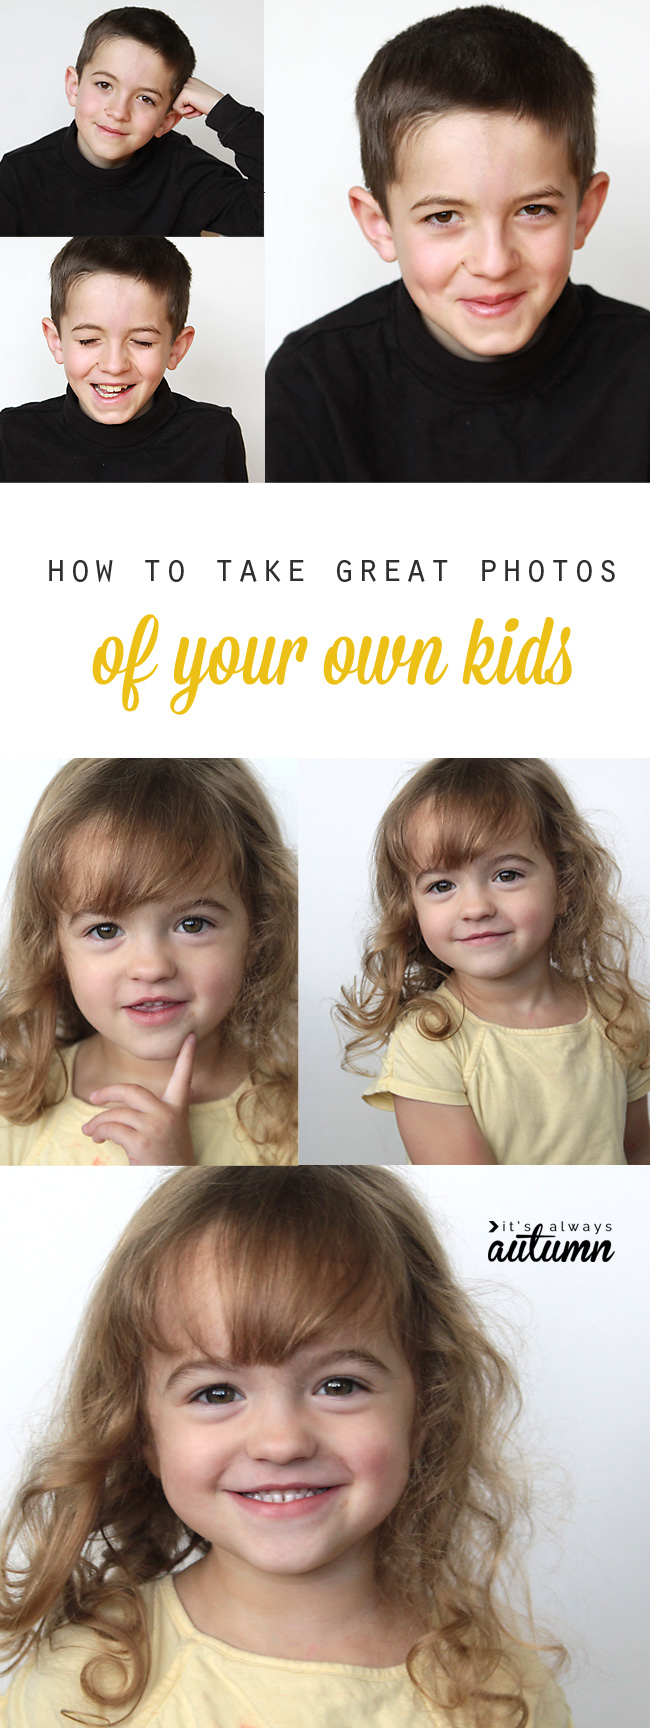 don't waste money on so-so school portraits when you can learn to take better photos of your own kids in your own home!